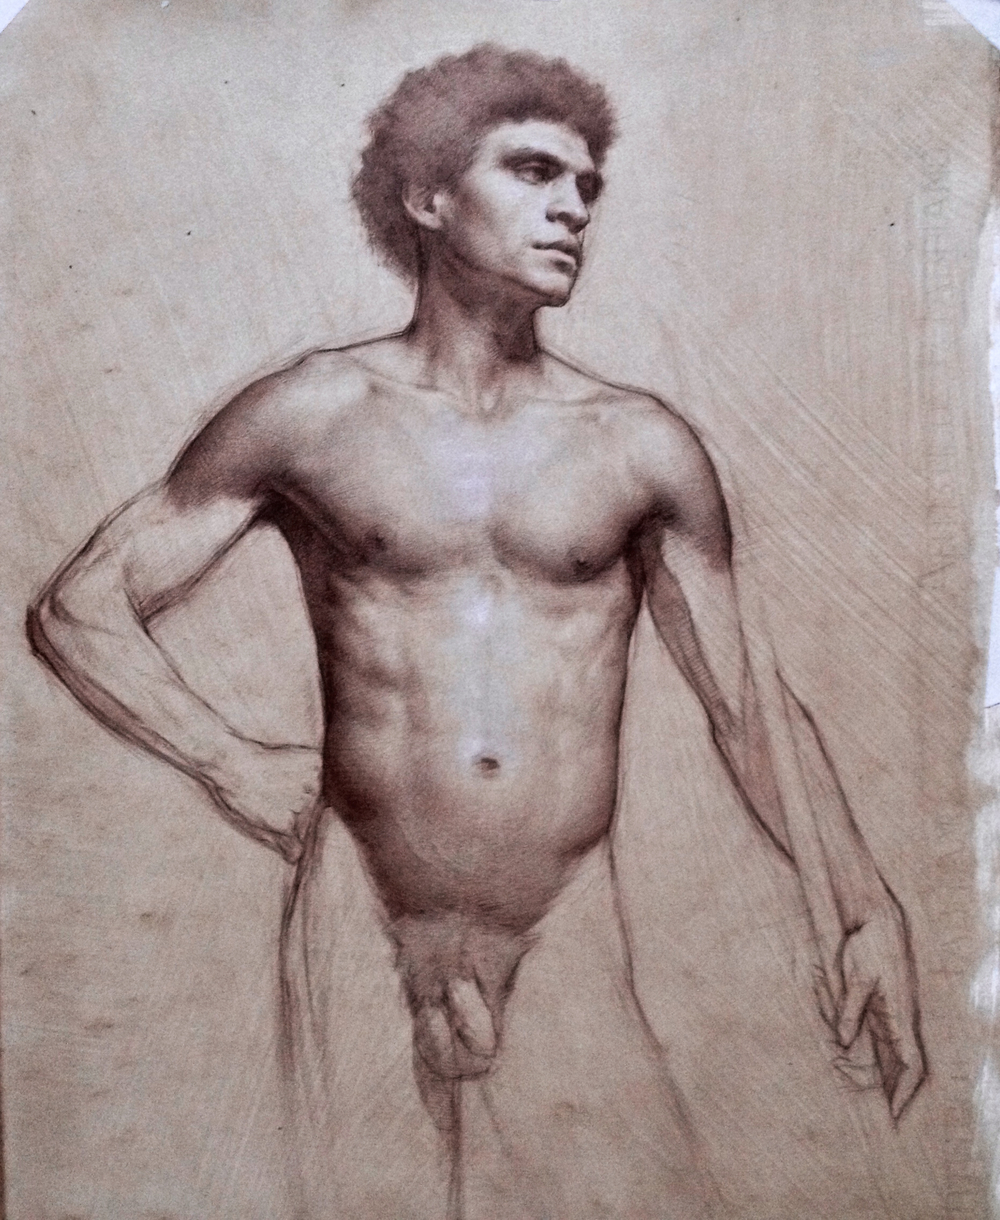 Pedro,  colored pencil and white chalk on paper